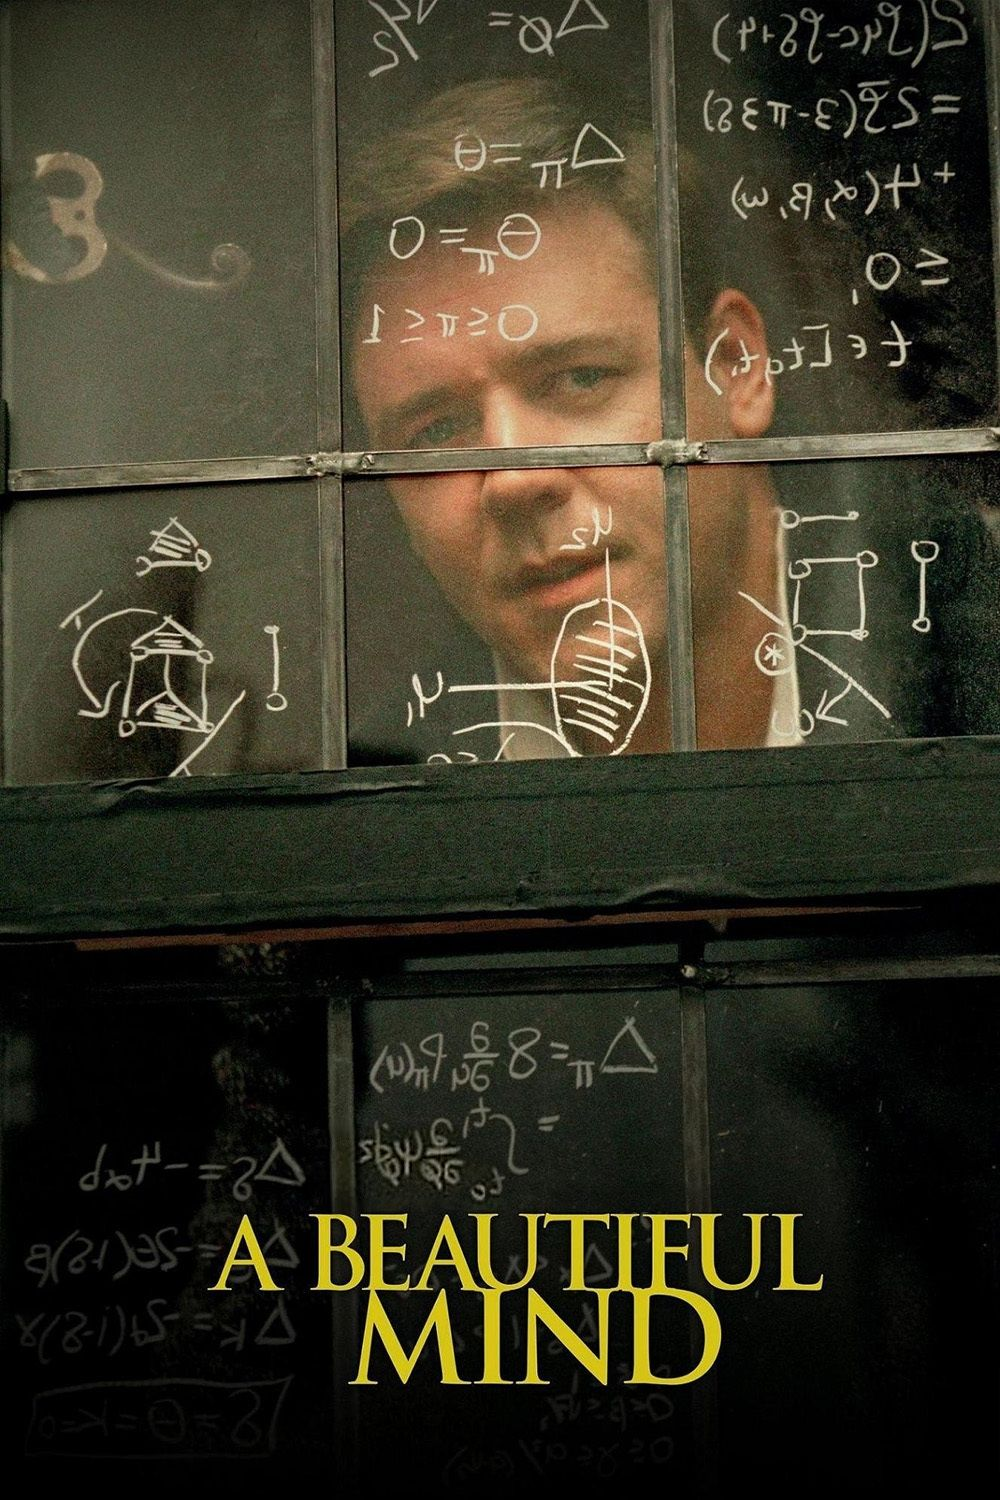 beautiful mind quotes - Pesquisa Google